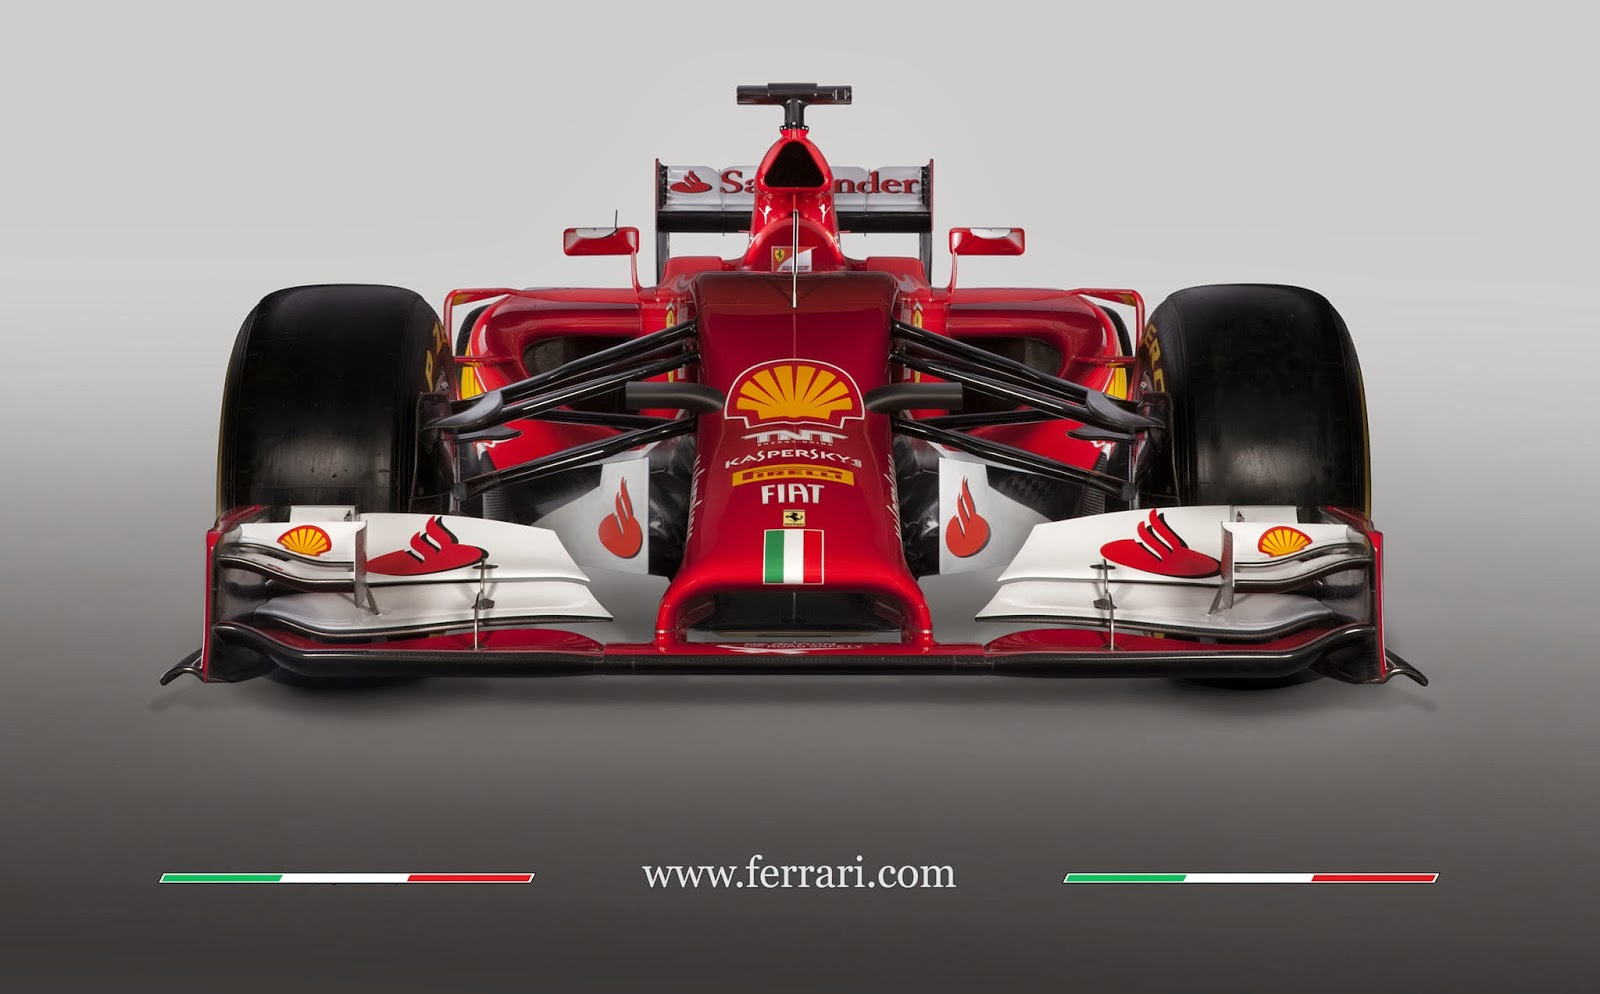 Auto, Auto Industry, F1, F14-T, Fans, Fernando Alonso, Ferrari, Formula 1, Kimi Raikkonen, Race, Sports, Team, US, Votes, World Championship,